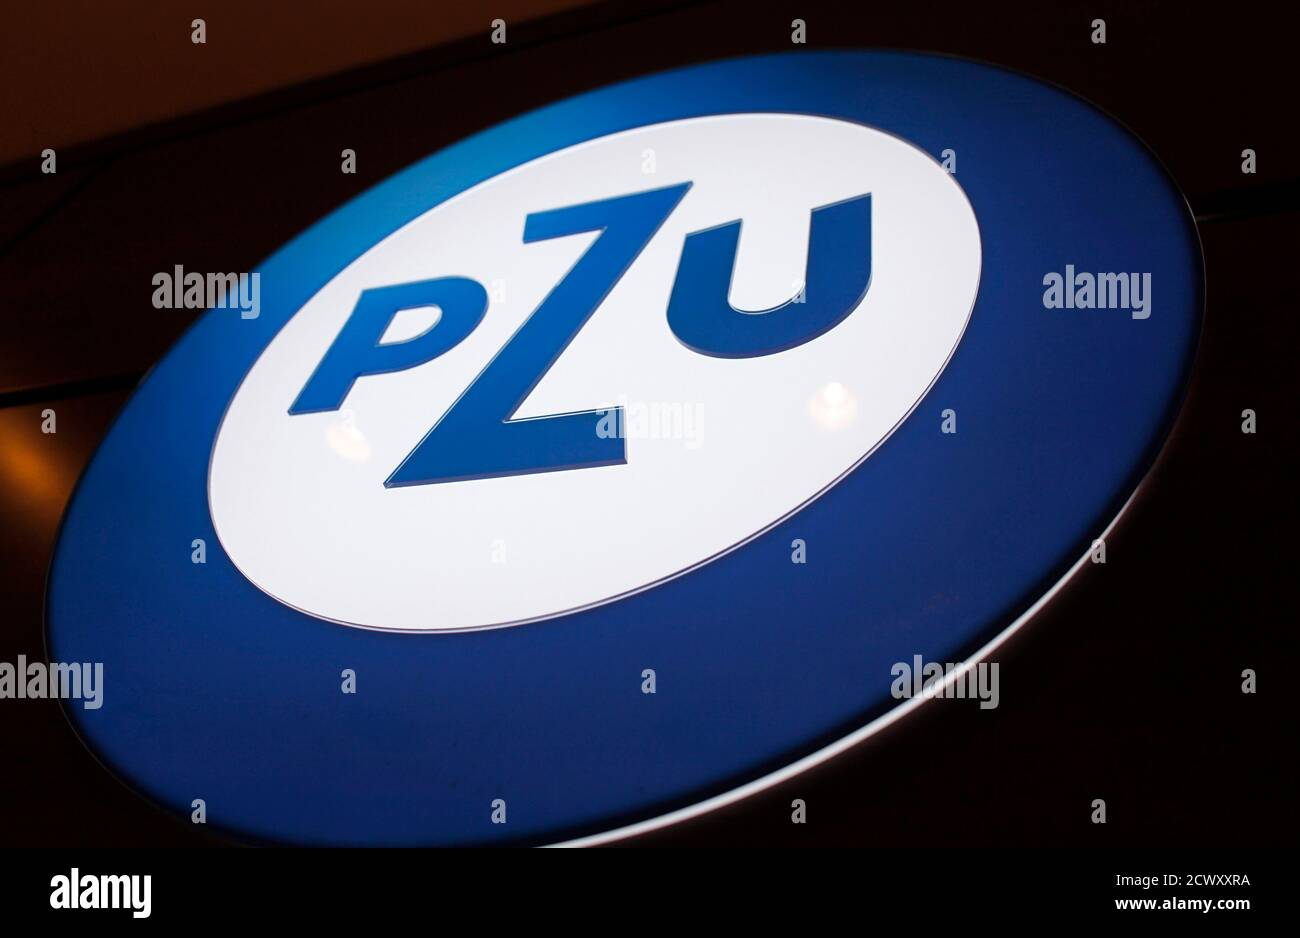 The logo of Eastern Europe's biggest listed insurer PZU is seen in Warsaw November 14, 2012. PZU expects its net profit in the final three months of the year to be below 1.12 billion zlotys ($340.9 million) it earned in the third quarter, CEO Andrzej Klesyk said on Wednesday.  REUTERS/Peter Andrews (POLAND - Tags: BUSINESS LOGO) Banque D'Images